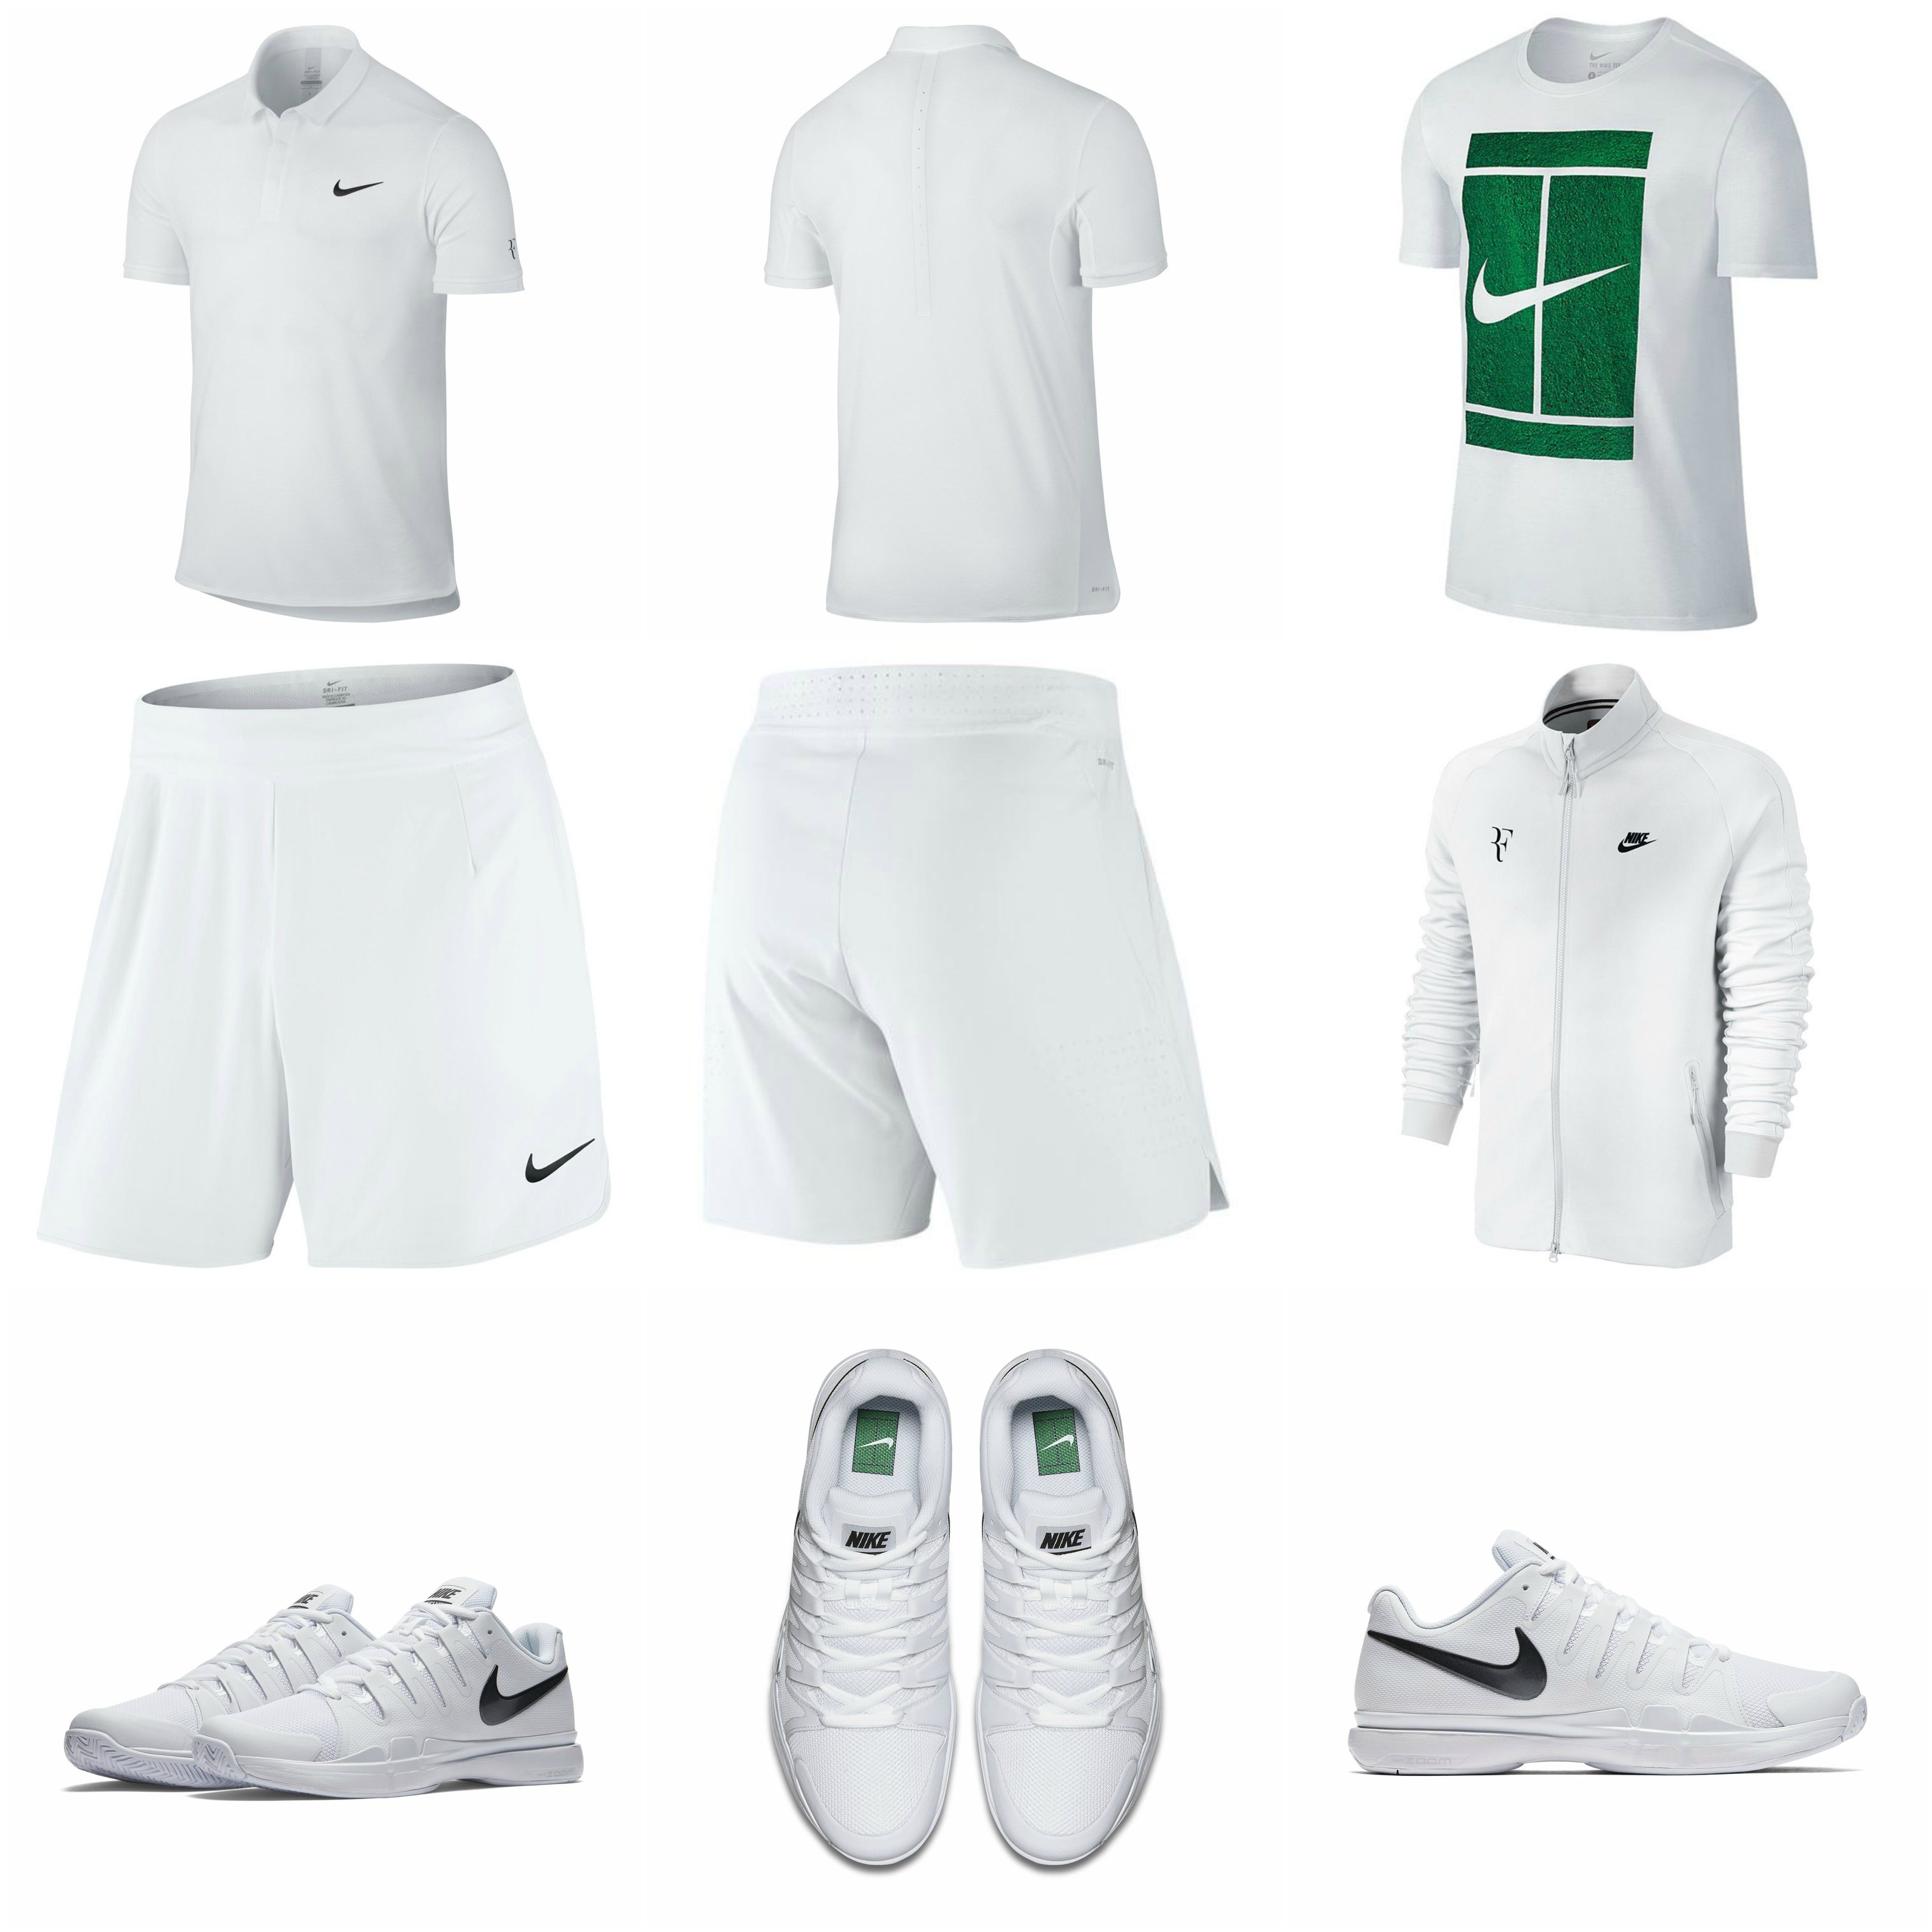 03ad8e2d2abdc Roger Federer s Outfit For Wimbledon 2016